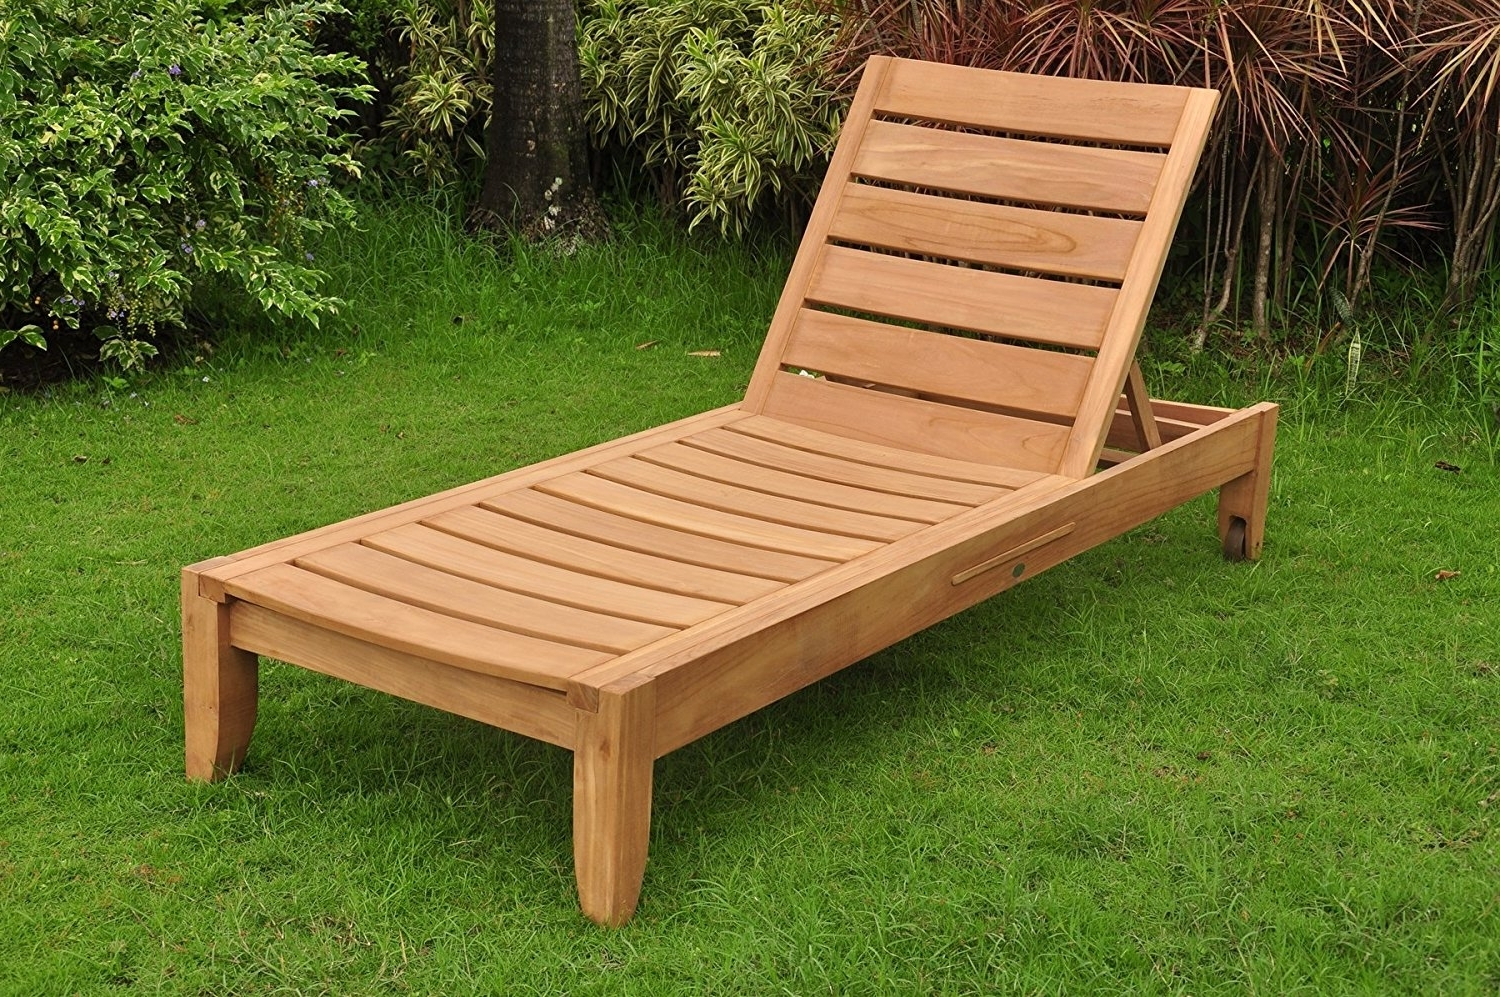 Amazon : New Grade A Teak Multi Position Sun Chaise Lounger Intended For Recent Teak Chaise Lounges (View 2 of 15)